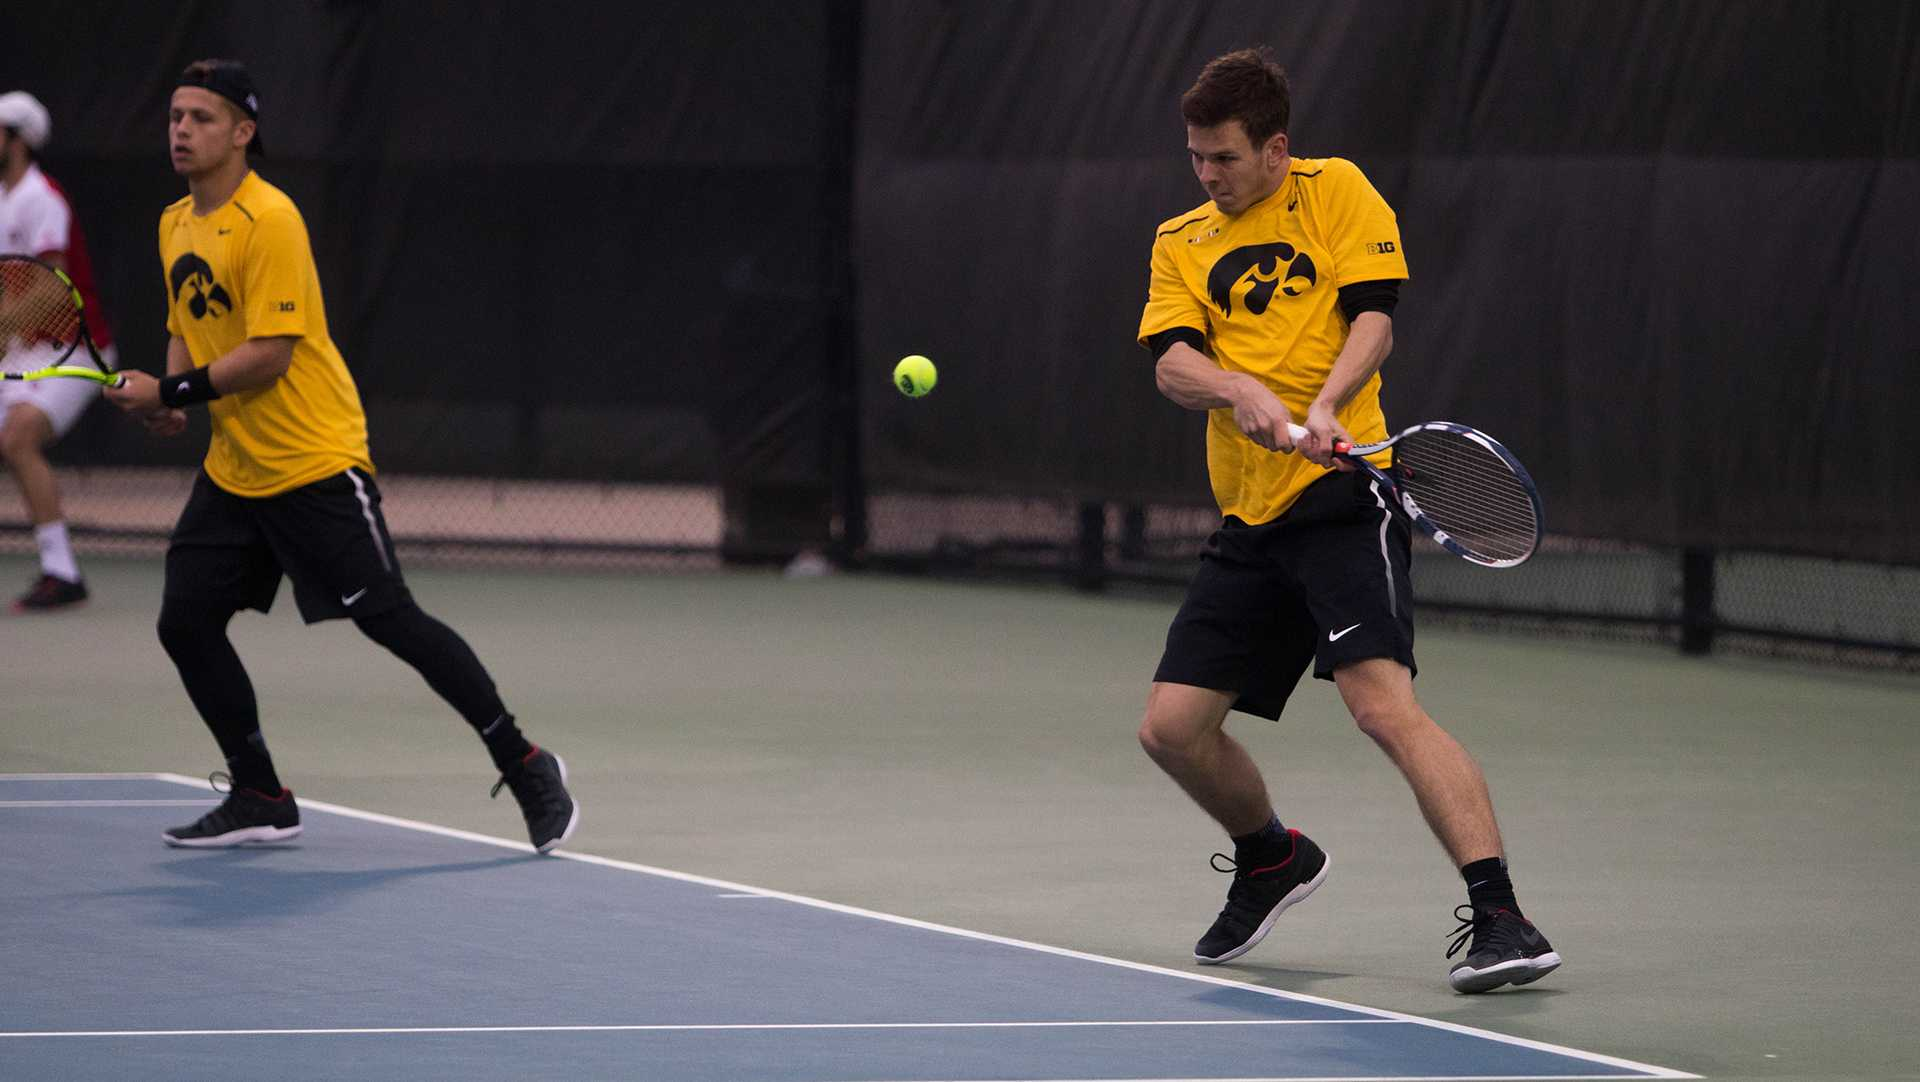 during a match against Indiana at the HTRC on April 13, 2018. The Hawkeyes were defeated 4-3. (Megan Nagorzanski/The Daily Iowan)